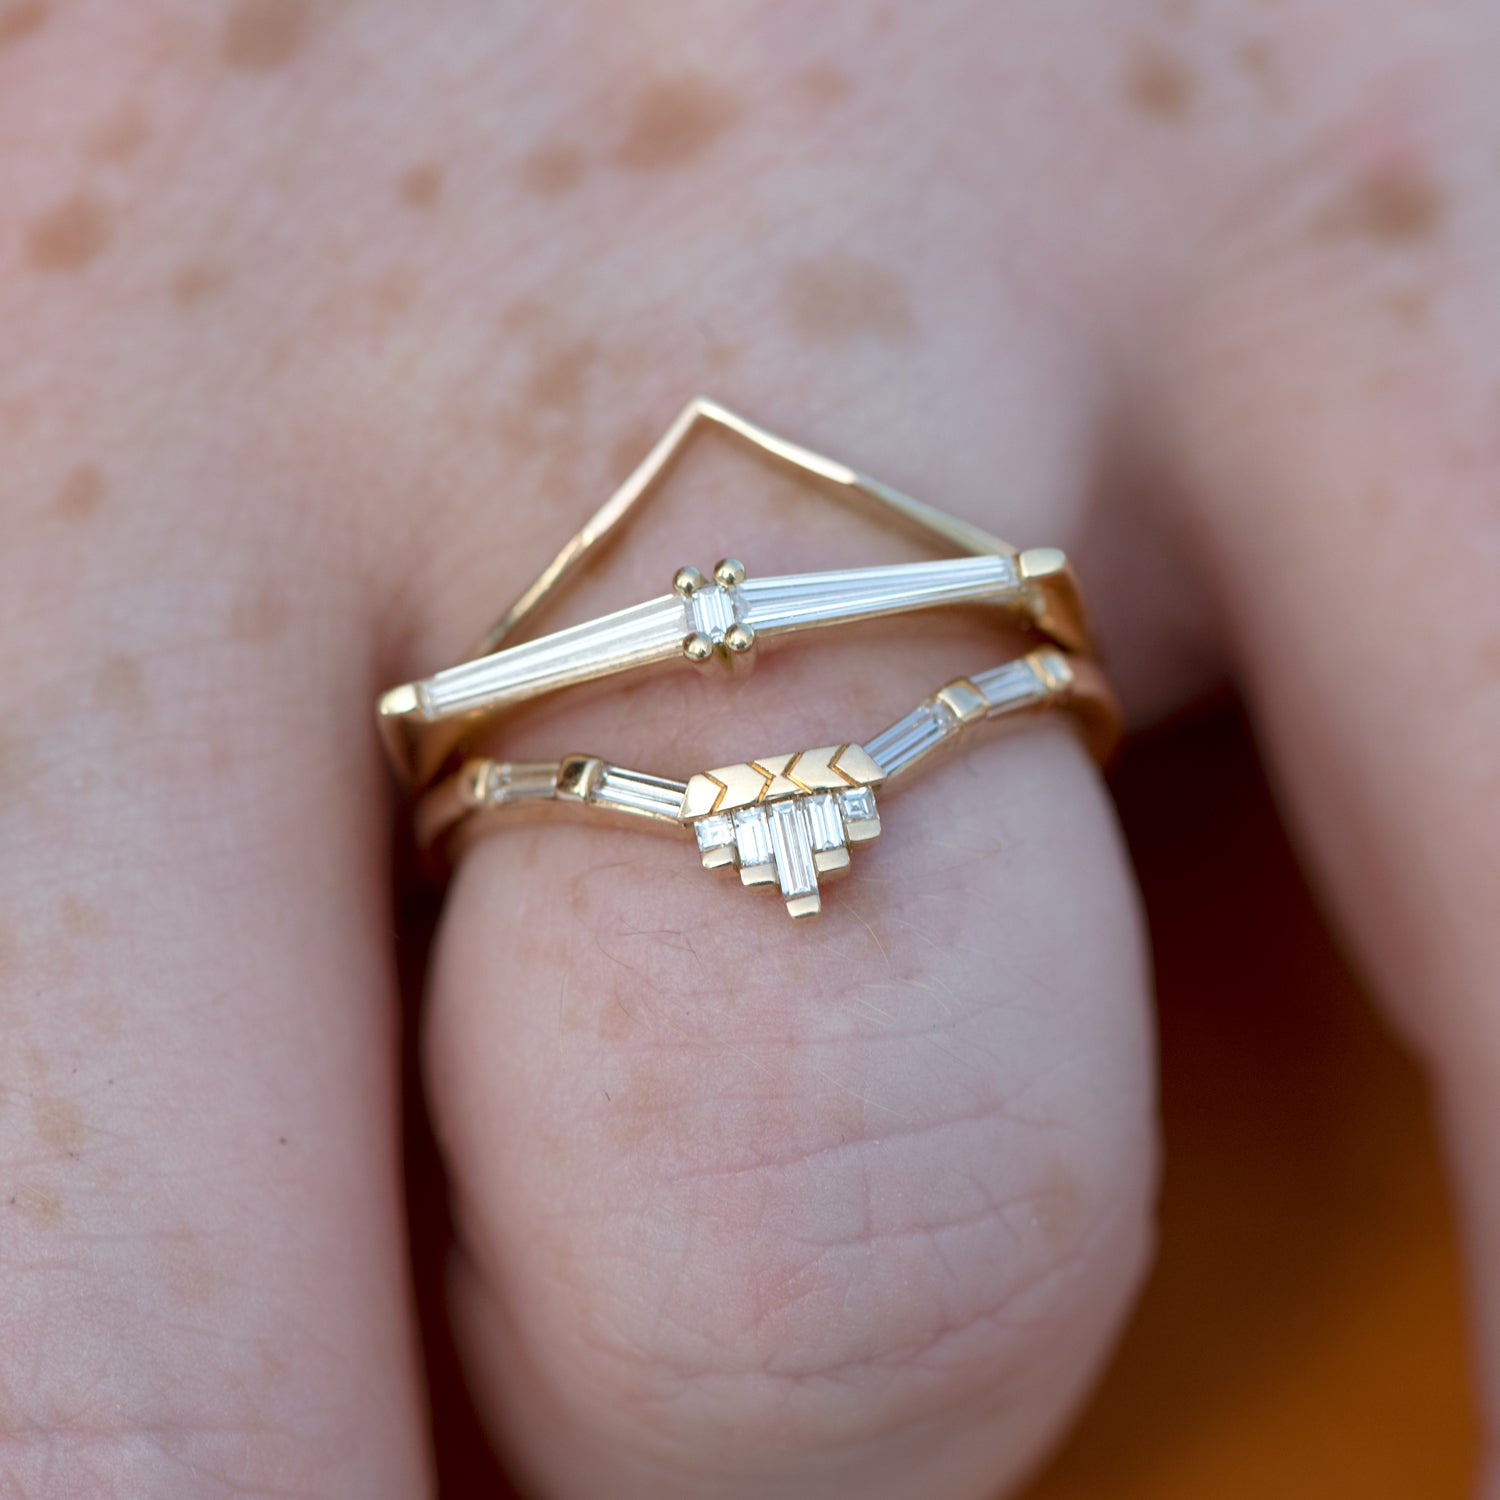 Nesting-Wedding-Ring-baguette-tower-CLOSEUP-in-set